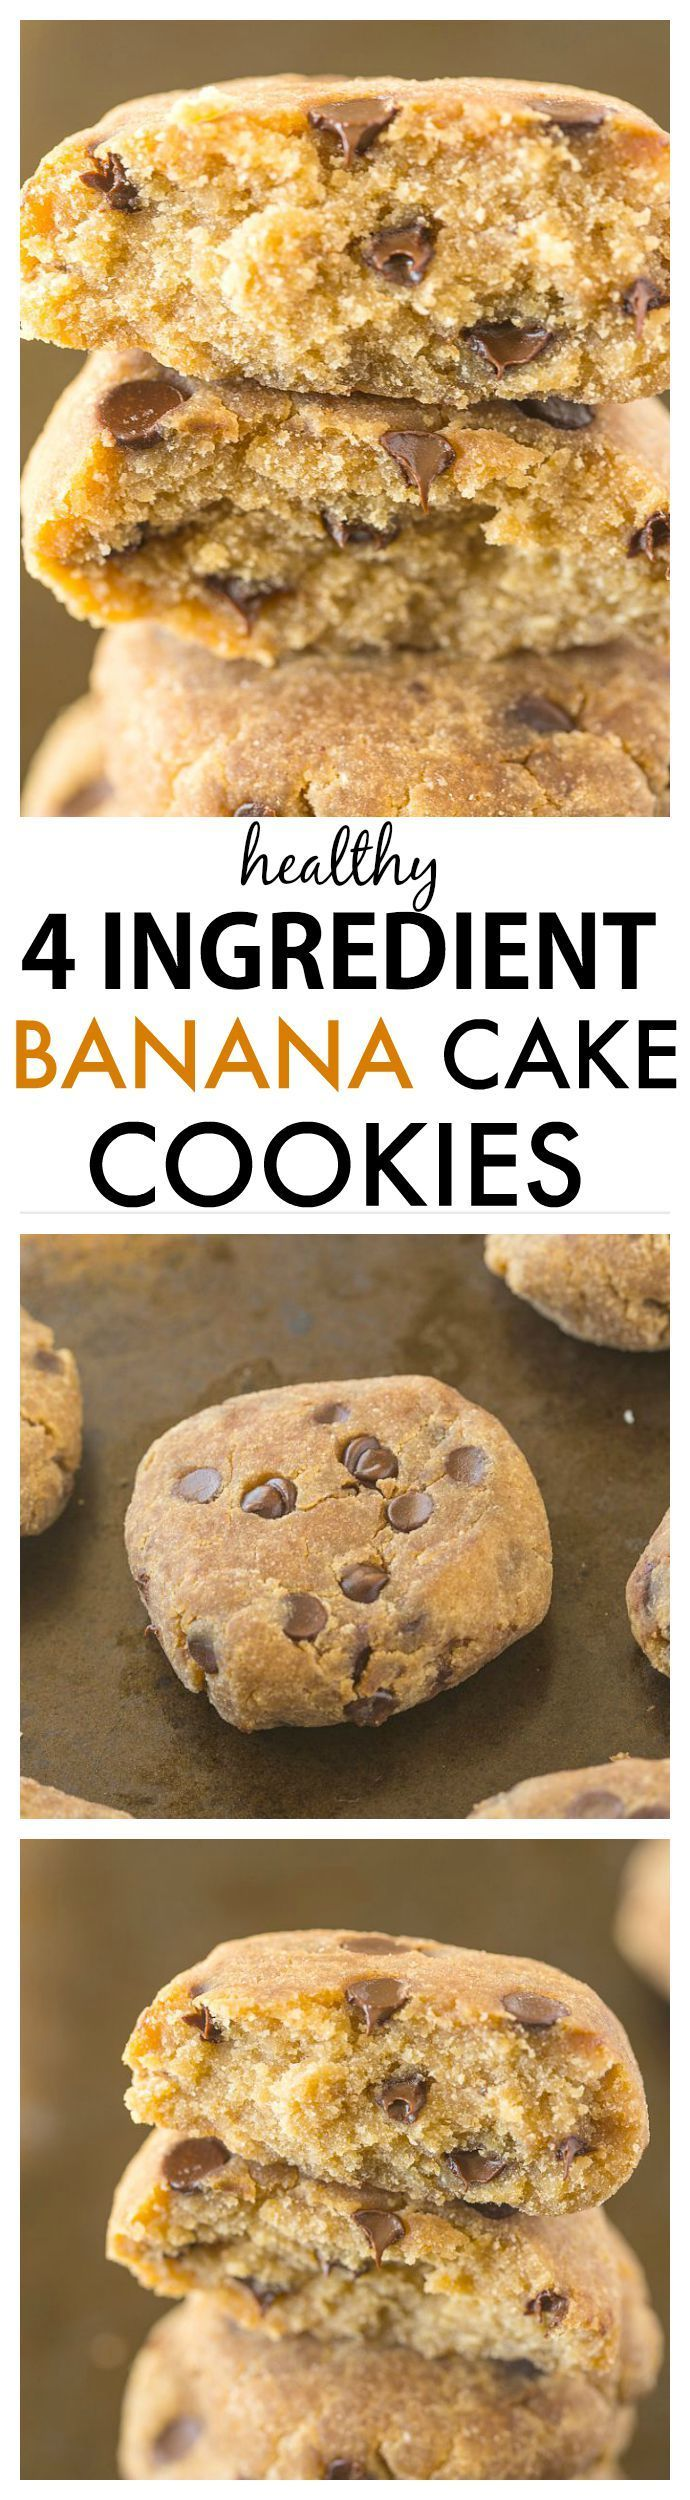 Healthy 4 Ingredient Banana Cake Cookies- Cake-like cookies which need just four ingredients and 12 minutes- You won't believe this delicious recipe is SO healthy too! {paleo, vegan, gluten-free}- thebigmansworld.com Gluten Free Recipes, Gluten Free Life, #GlutenFree